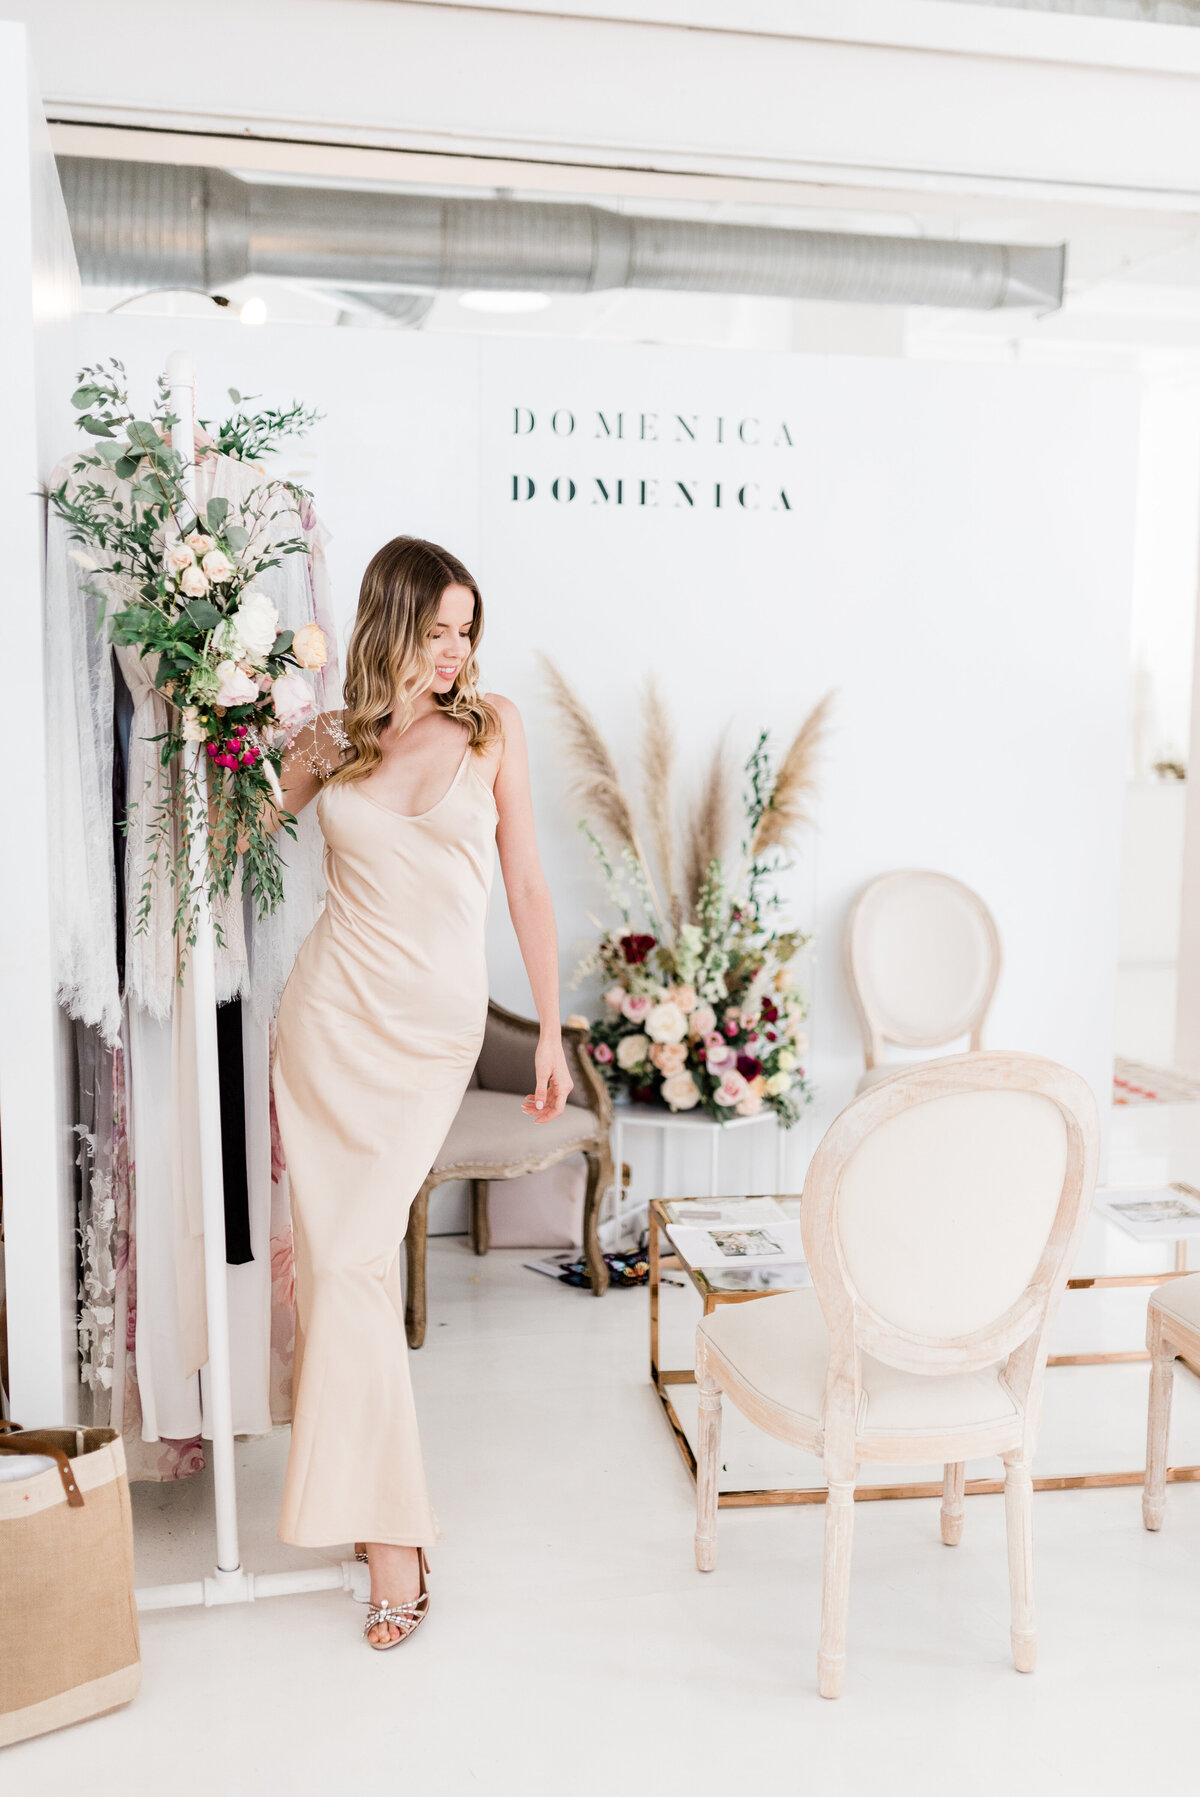 DOMENICADOMENICANYBFW2019-117